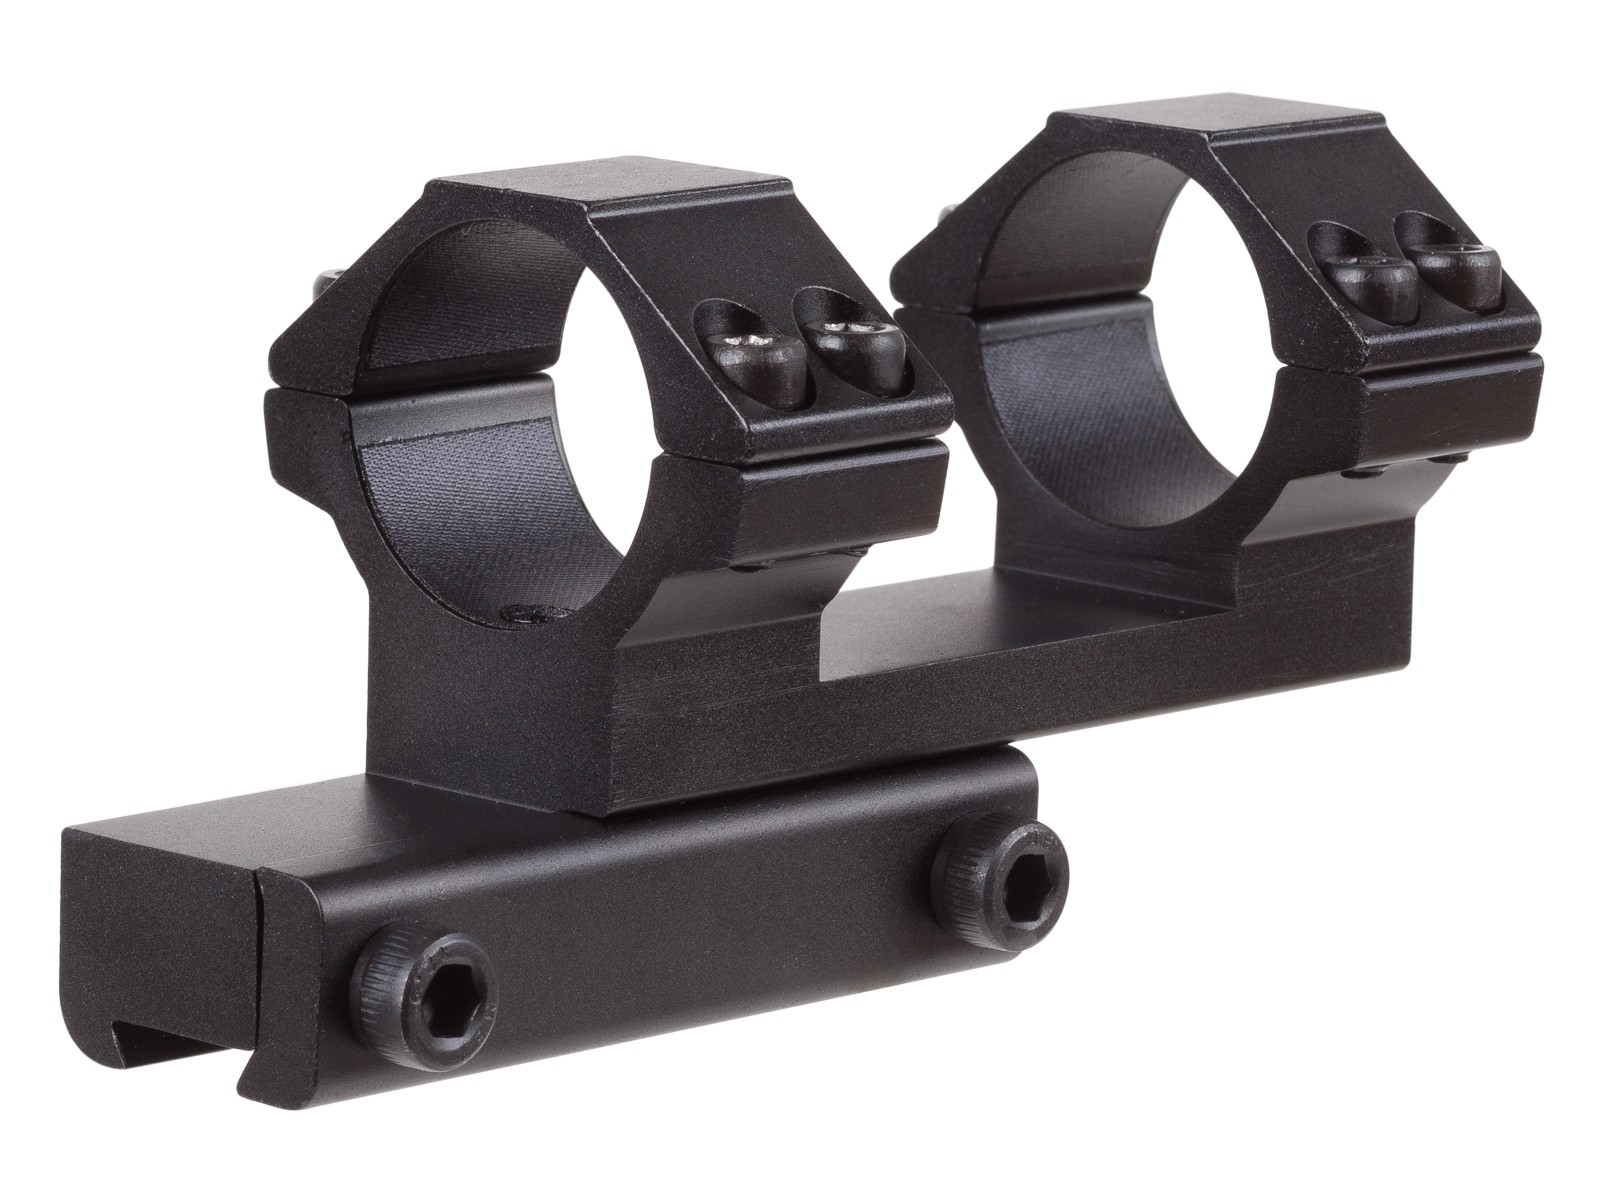 "Leapers Accushot 1-Pc Offset Mount w/1"" Rings, Weaver/Picatinny Mount"